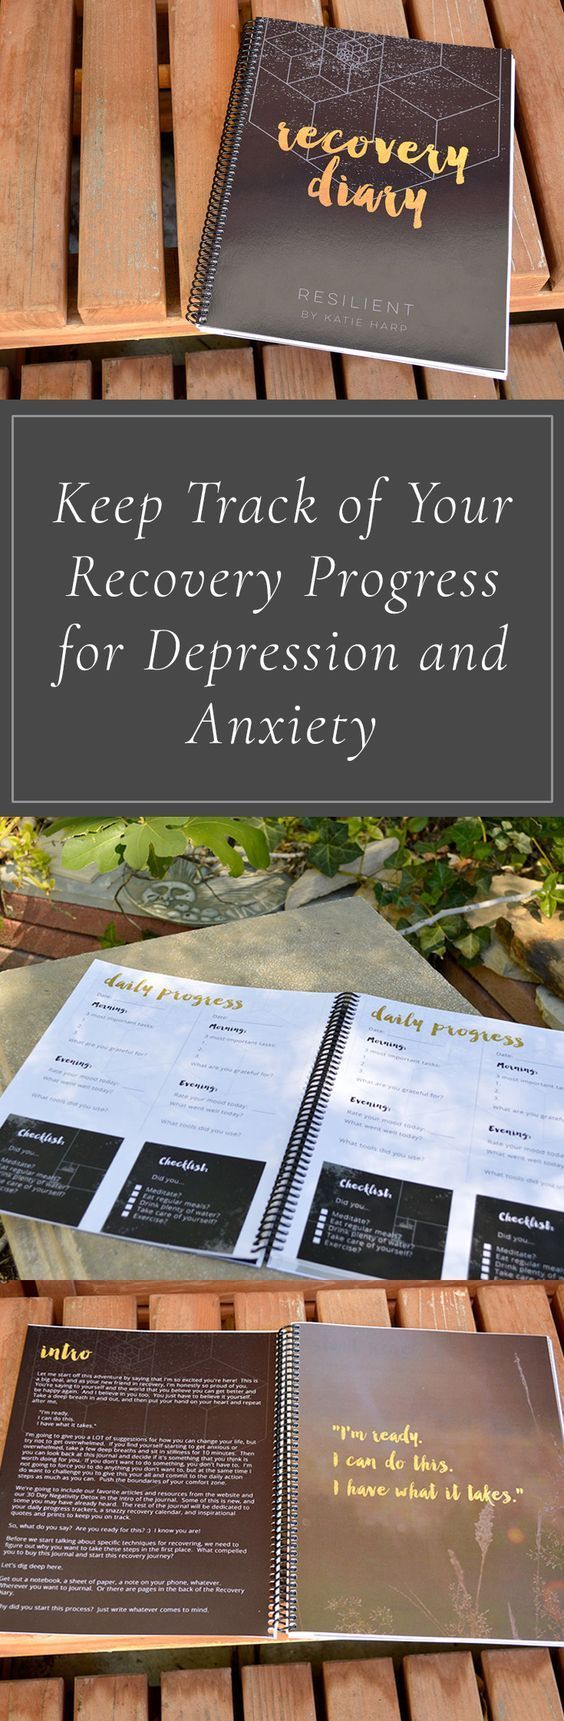 Are you looking for a way to keep track of your daily progress in recovering from depression? Use our Recovery Diary to keep track of your recovery progress for depression and anxiety. #AcupunctureforAnxiety